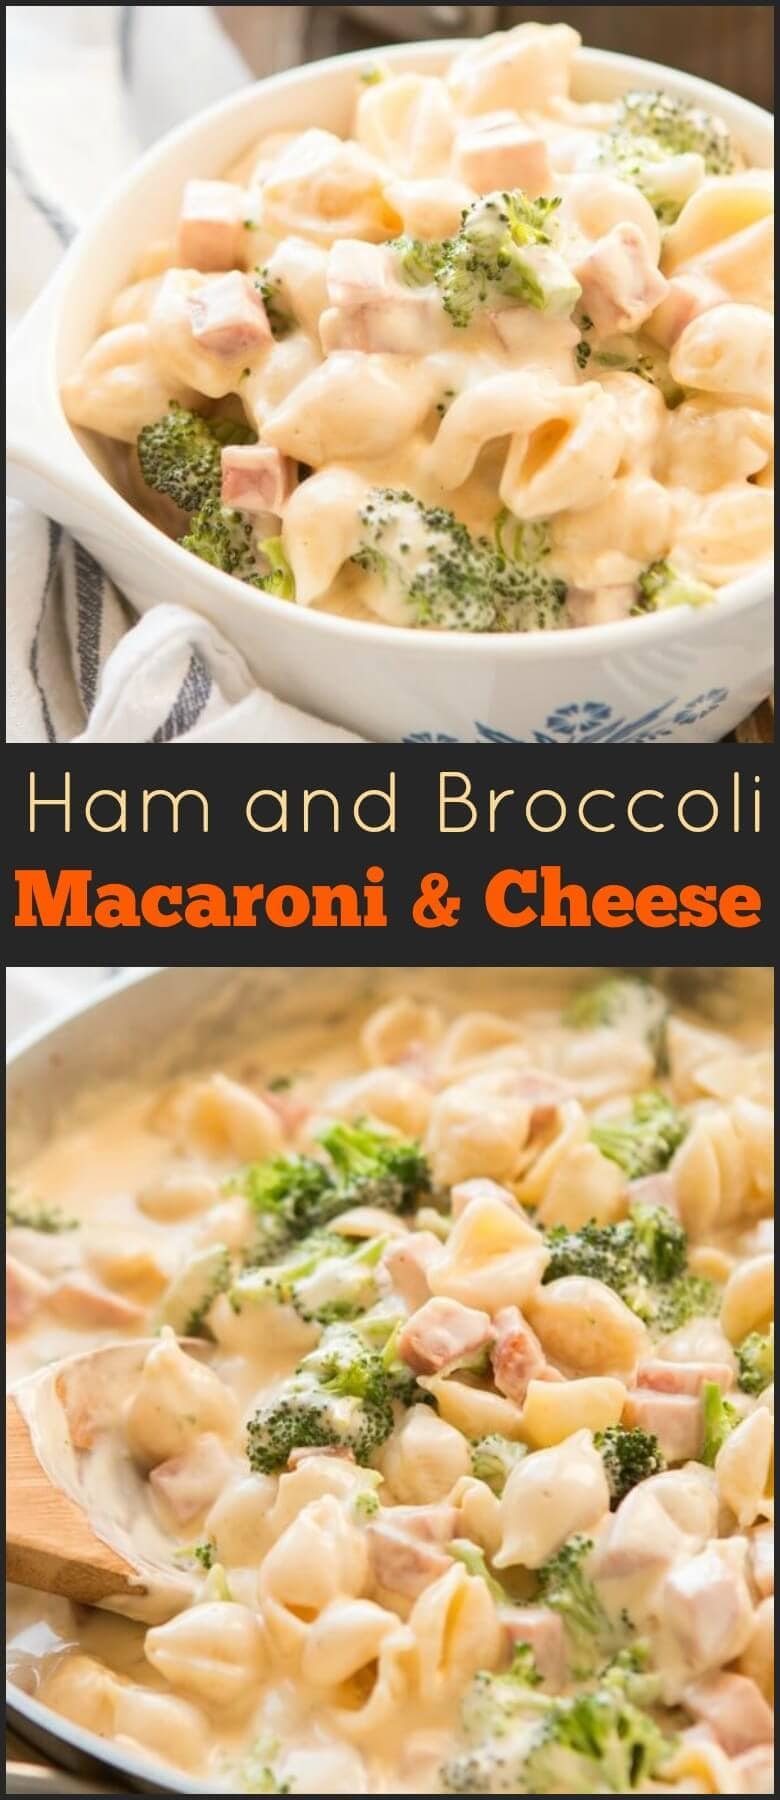 Ham and Broccoli Macaroni and Cheese - Oh Sweet Basil